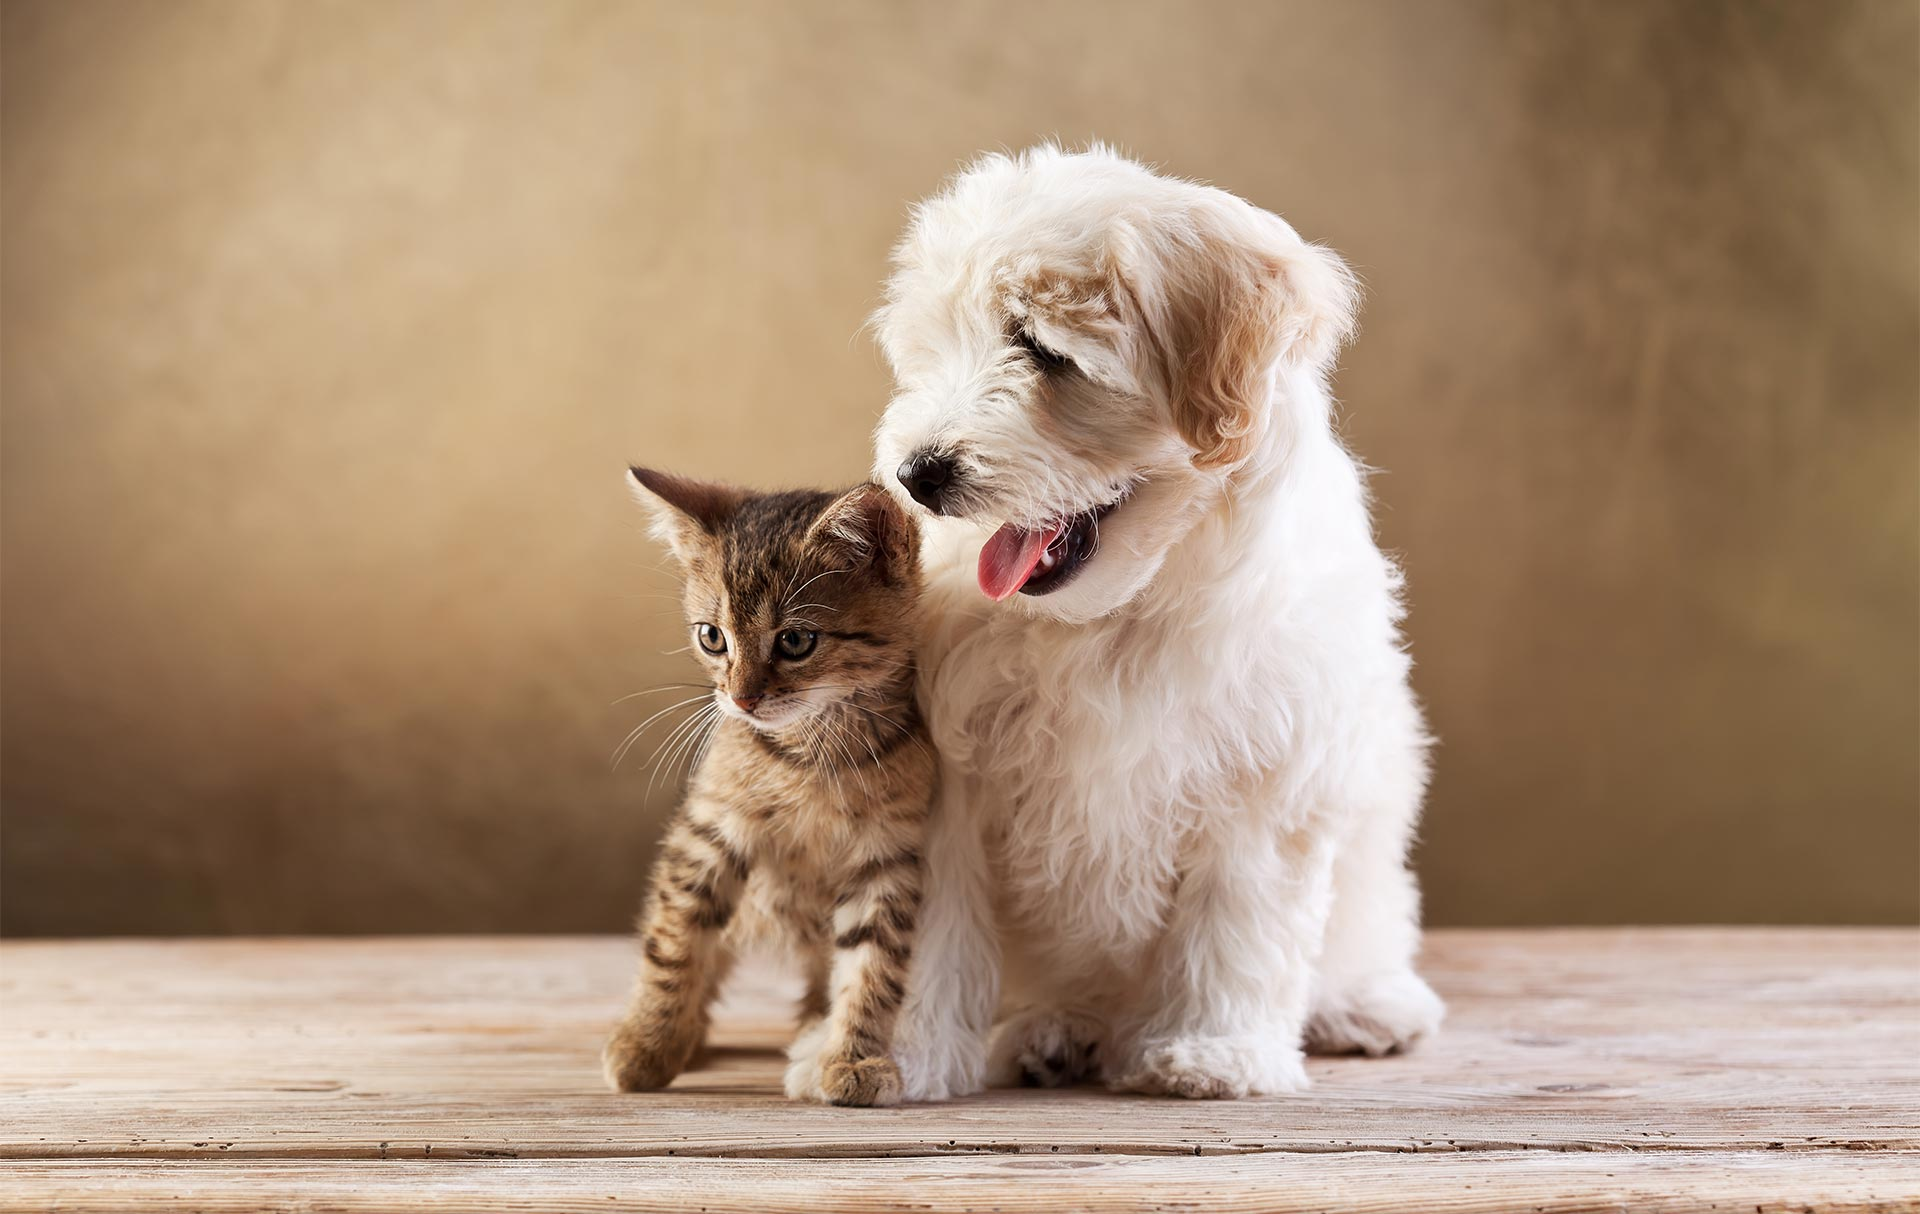 Why You Should Get Insurance for Your Pets